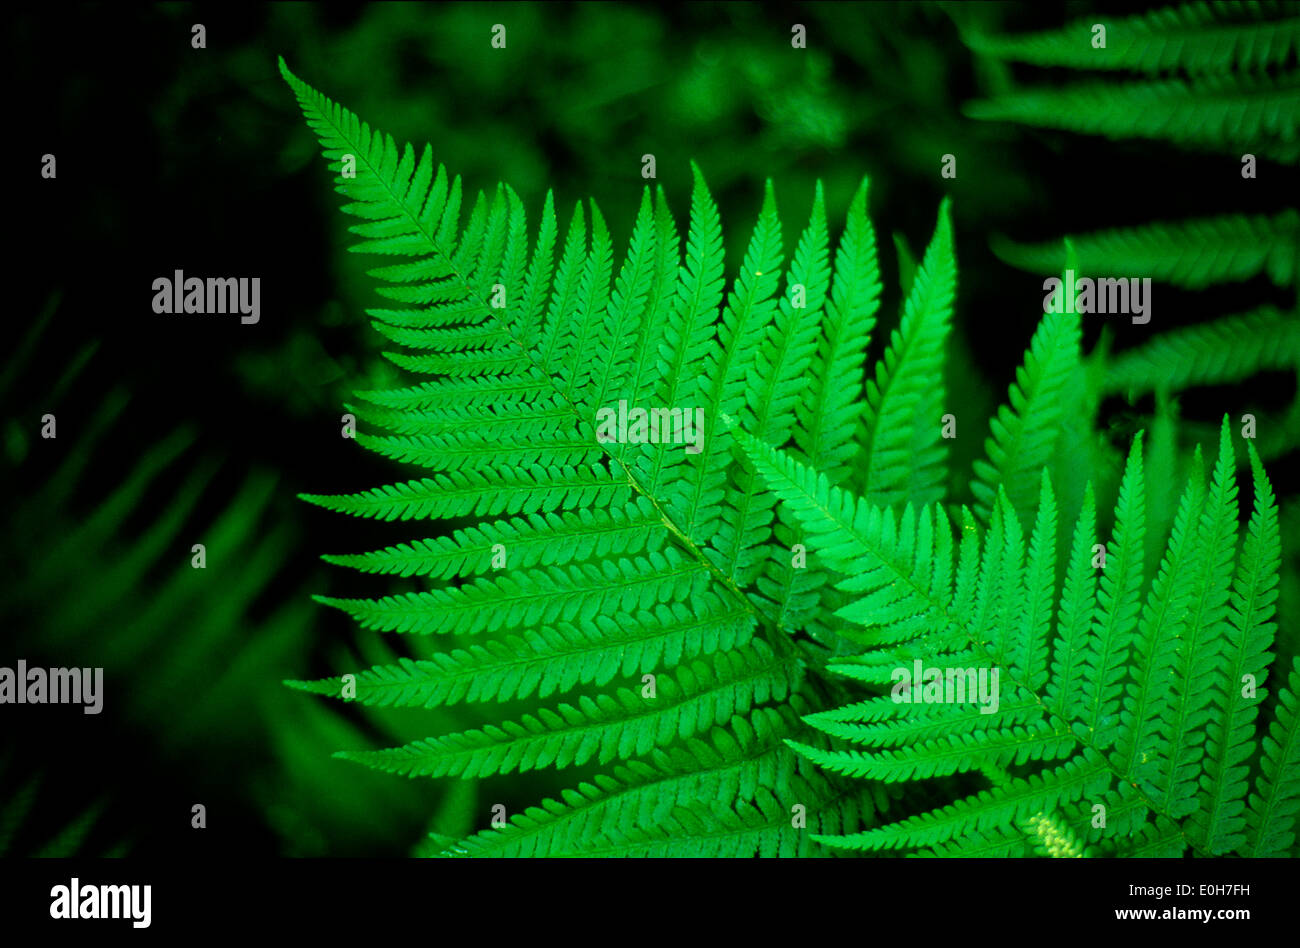 Fern close-up view - Stock Image